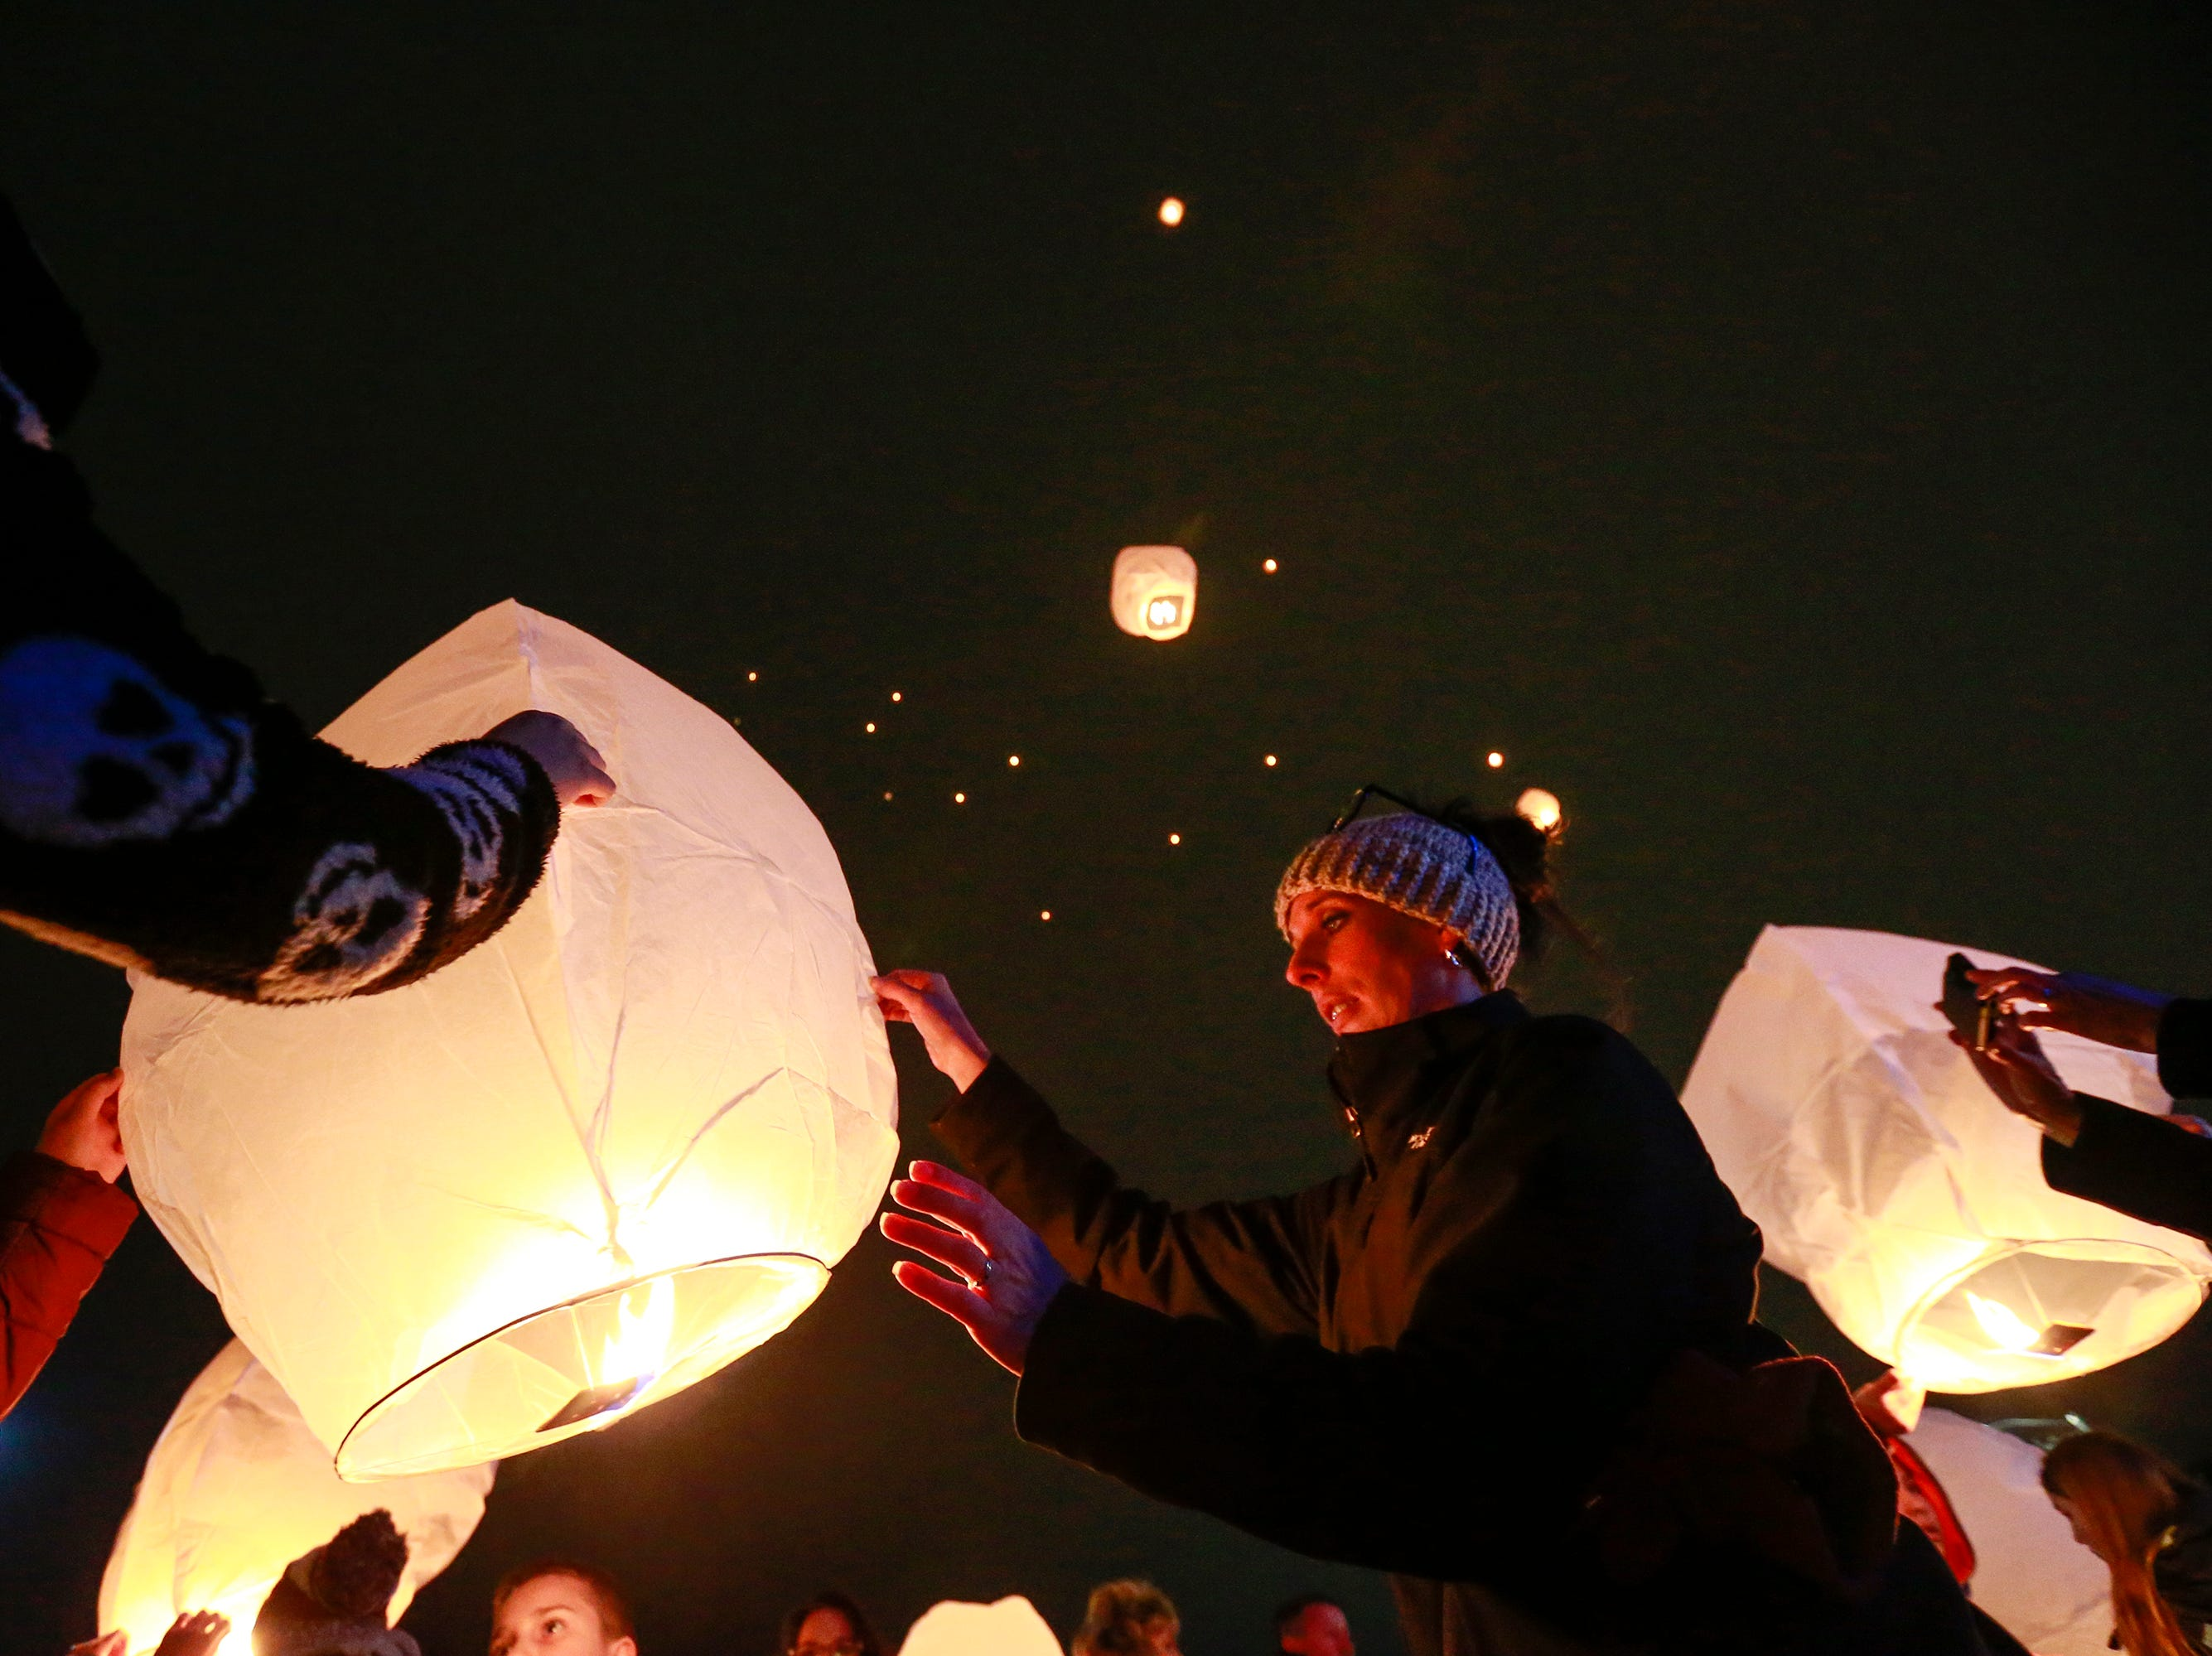 People release lanterns during the Tree of Hope for Jayme Closs ceremony Wednesday, Dec. 12, 2018, outside of Riverview Middle School in Barron, Wisc. T'xer Zhon Kha/USA TODAY NETWORK-Wisconsin